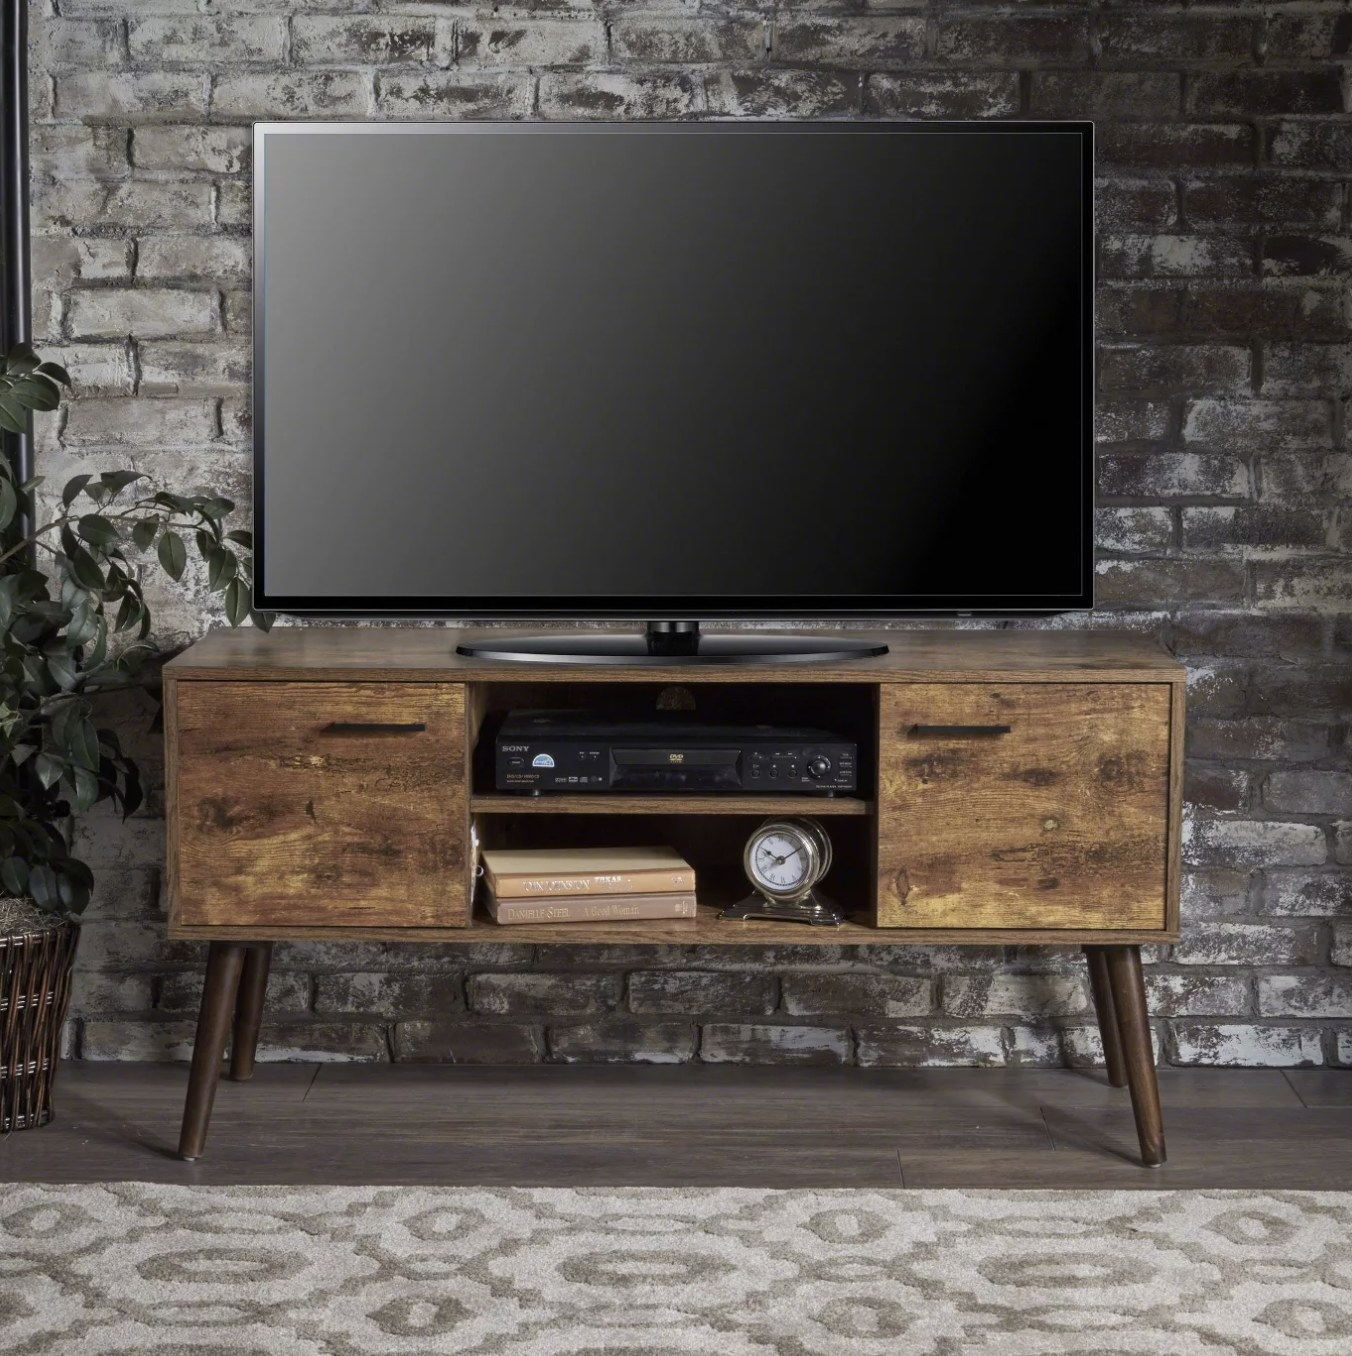 The dark wood entertainment center with a TV on top in a living space